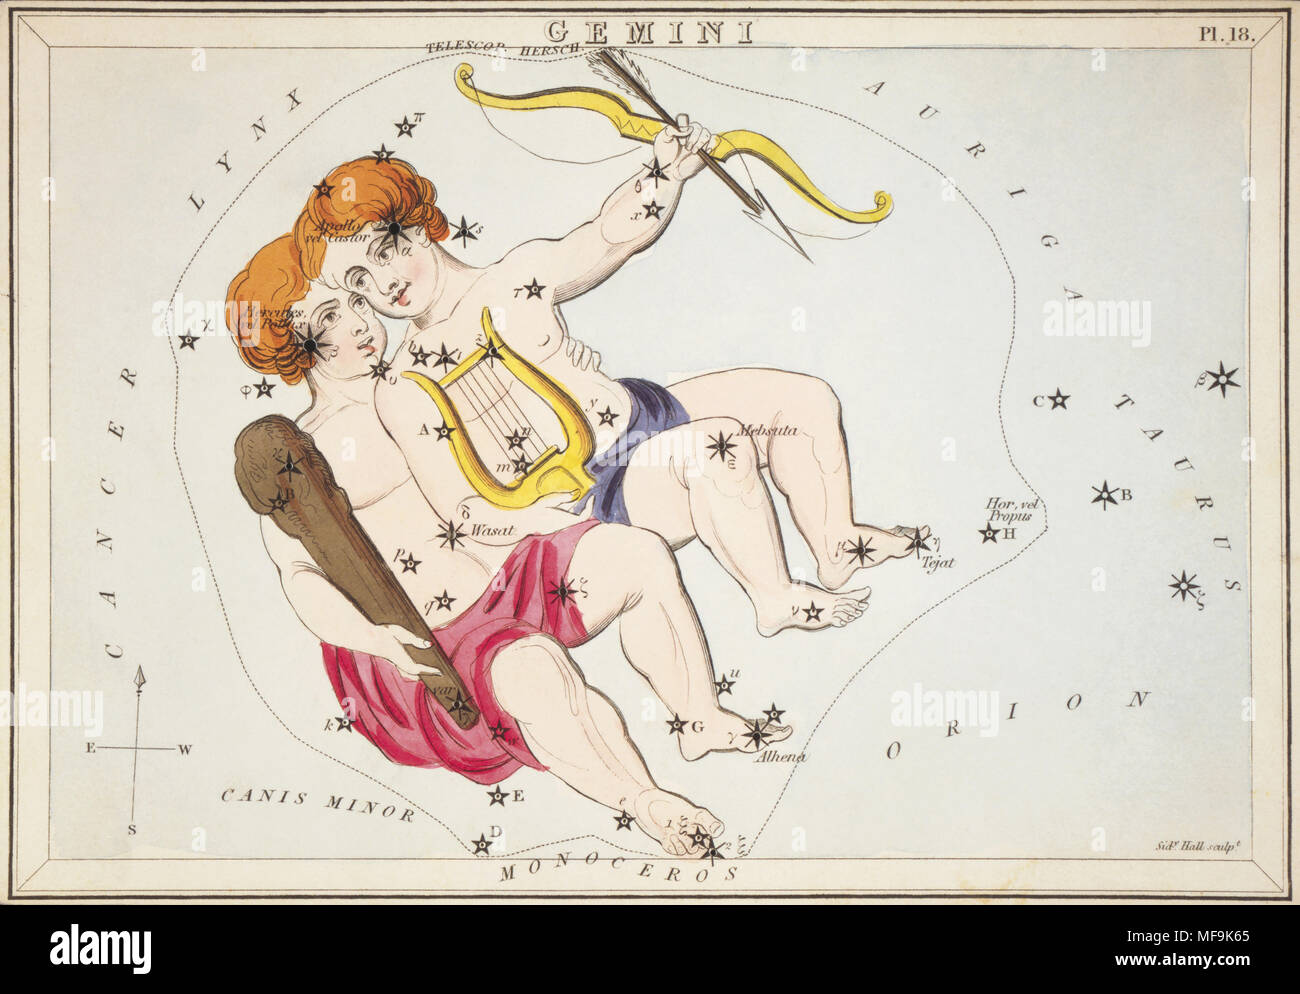 Gemini.  Card Number 18 from Urania's Mirror, or A View of the Heavens, one of a set of 32 astronomical star chart cards engraved by Sidney Hall and publshed 1824. - Stock Image